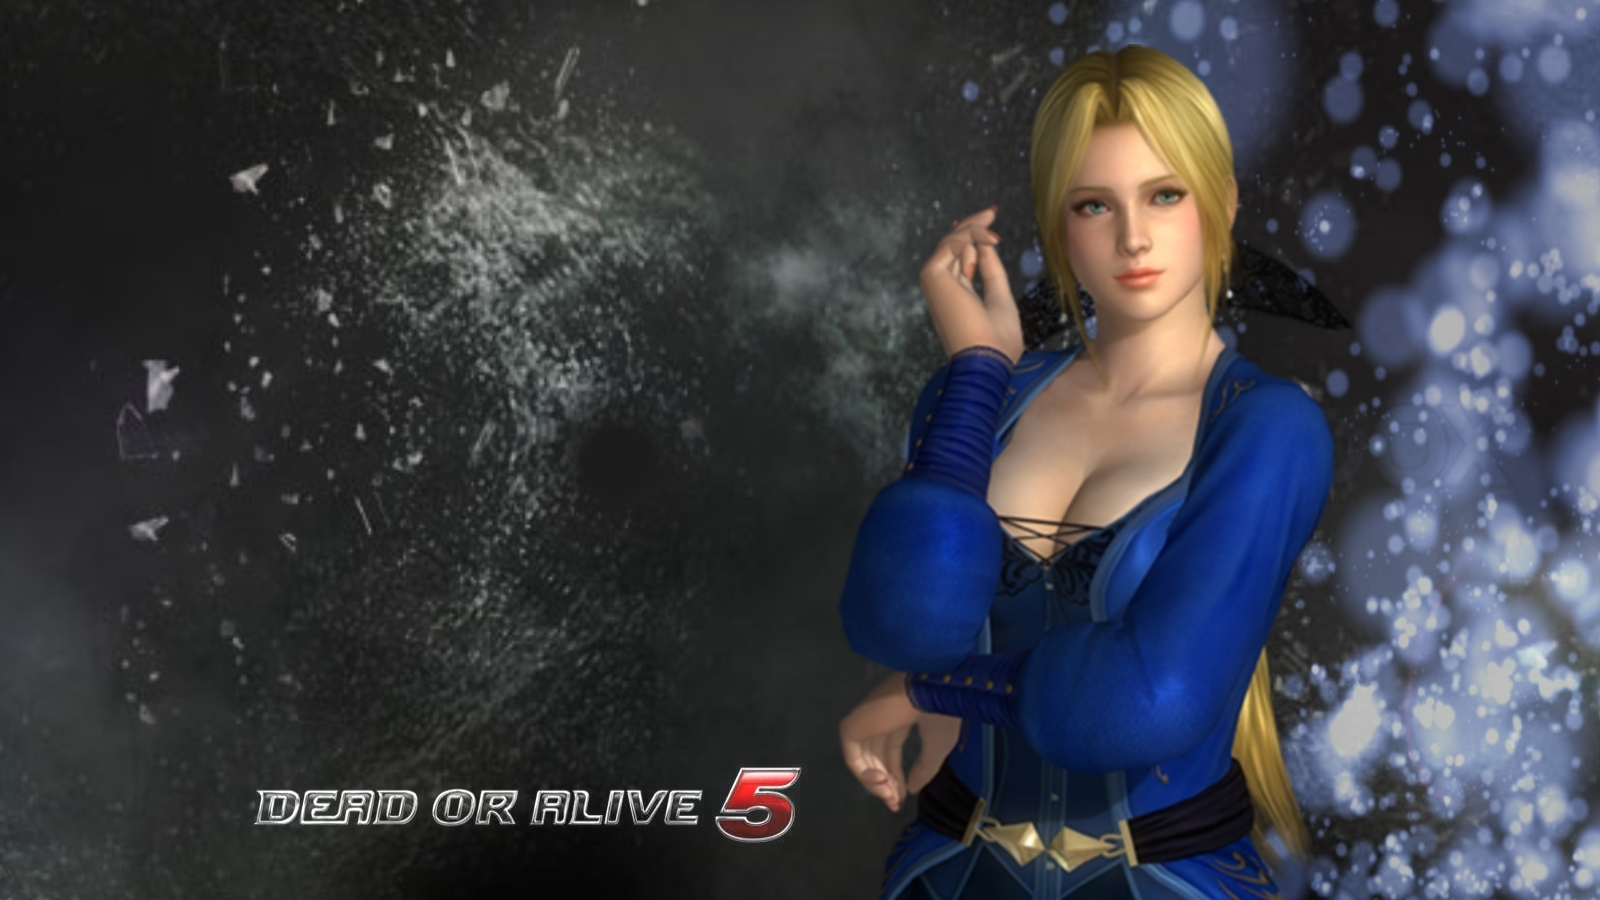 Eyesurfing Dead or Alive 5 Game Wallpaper 1600x900